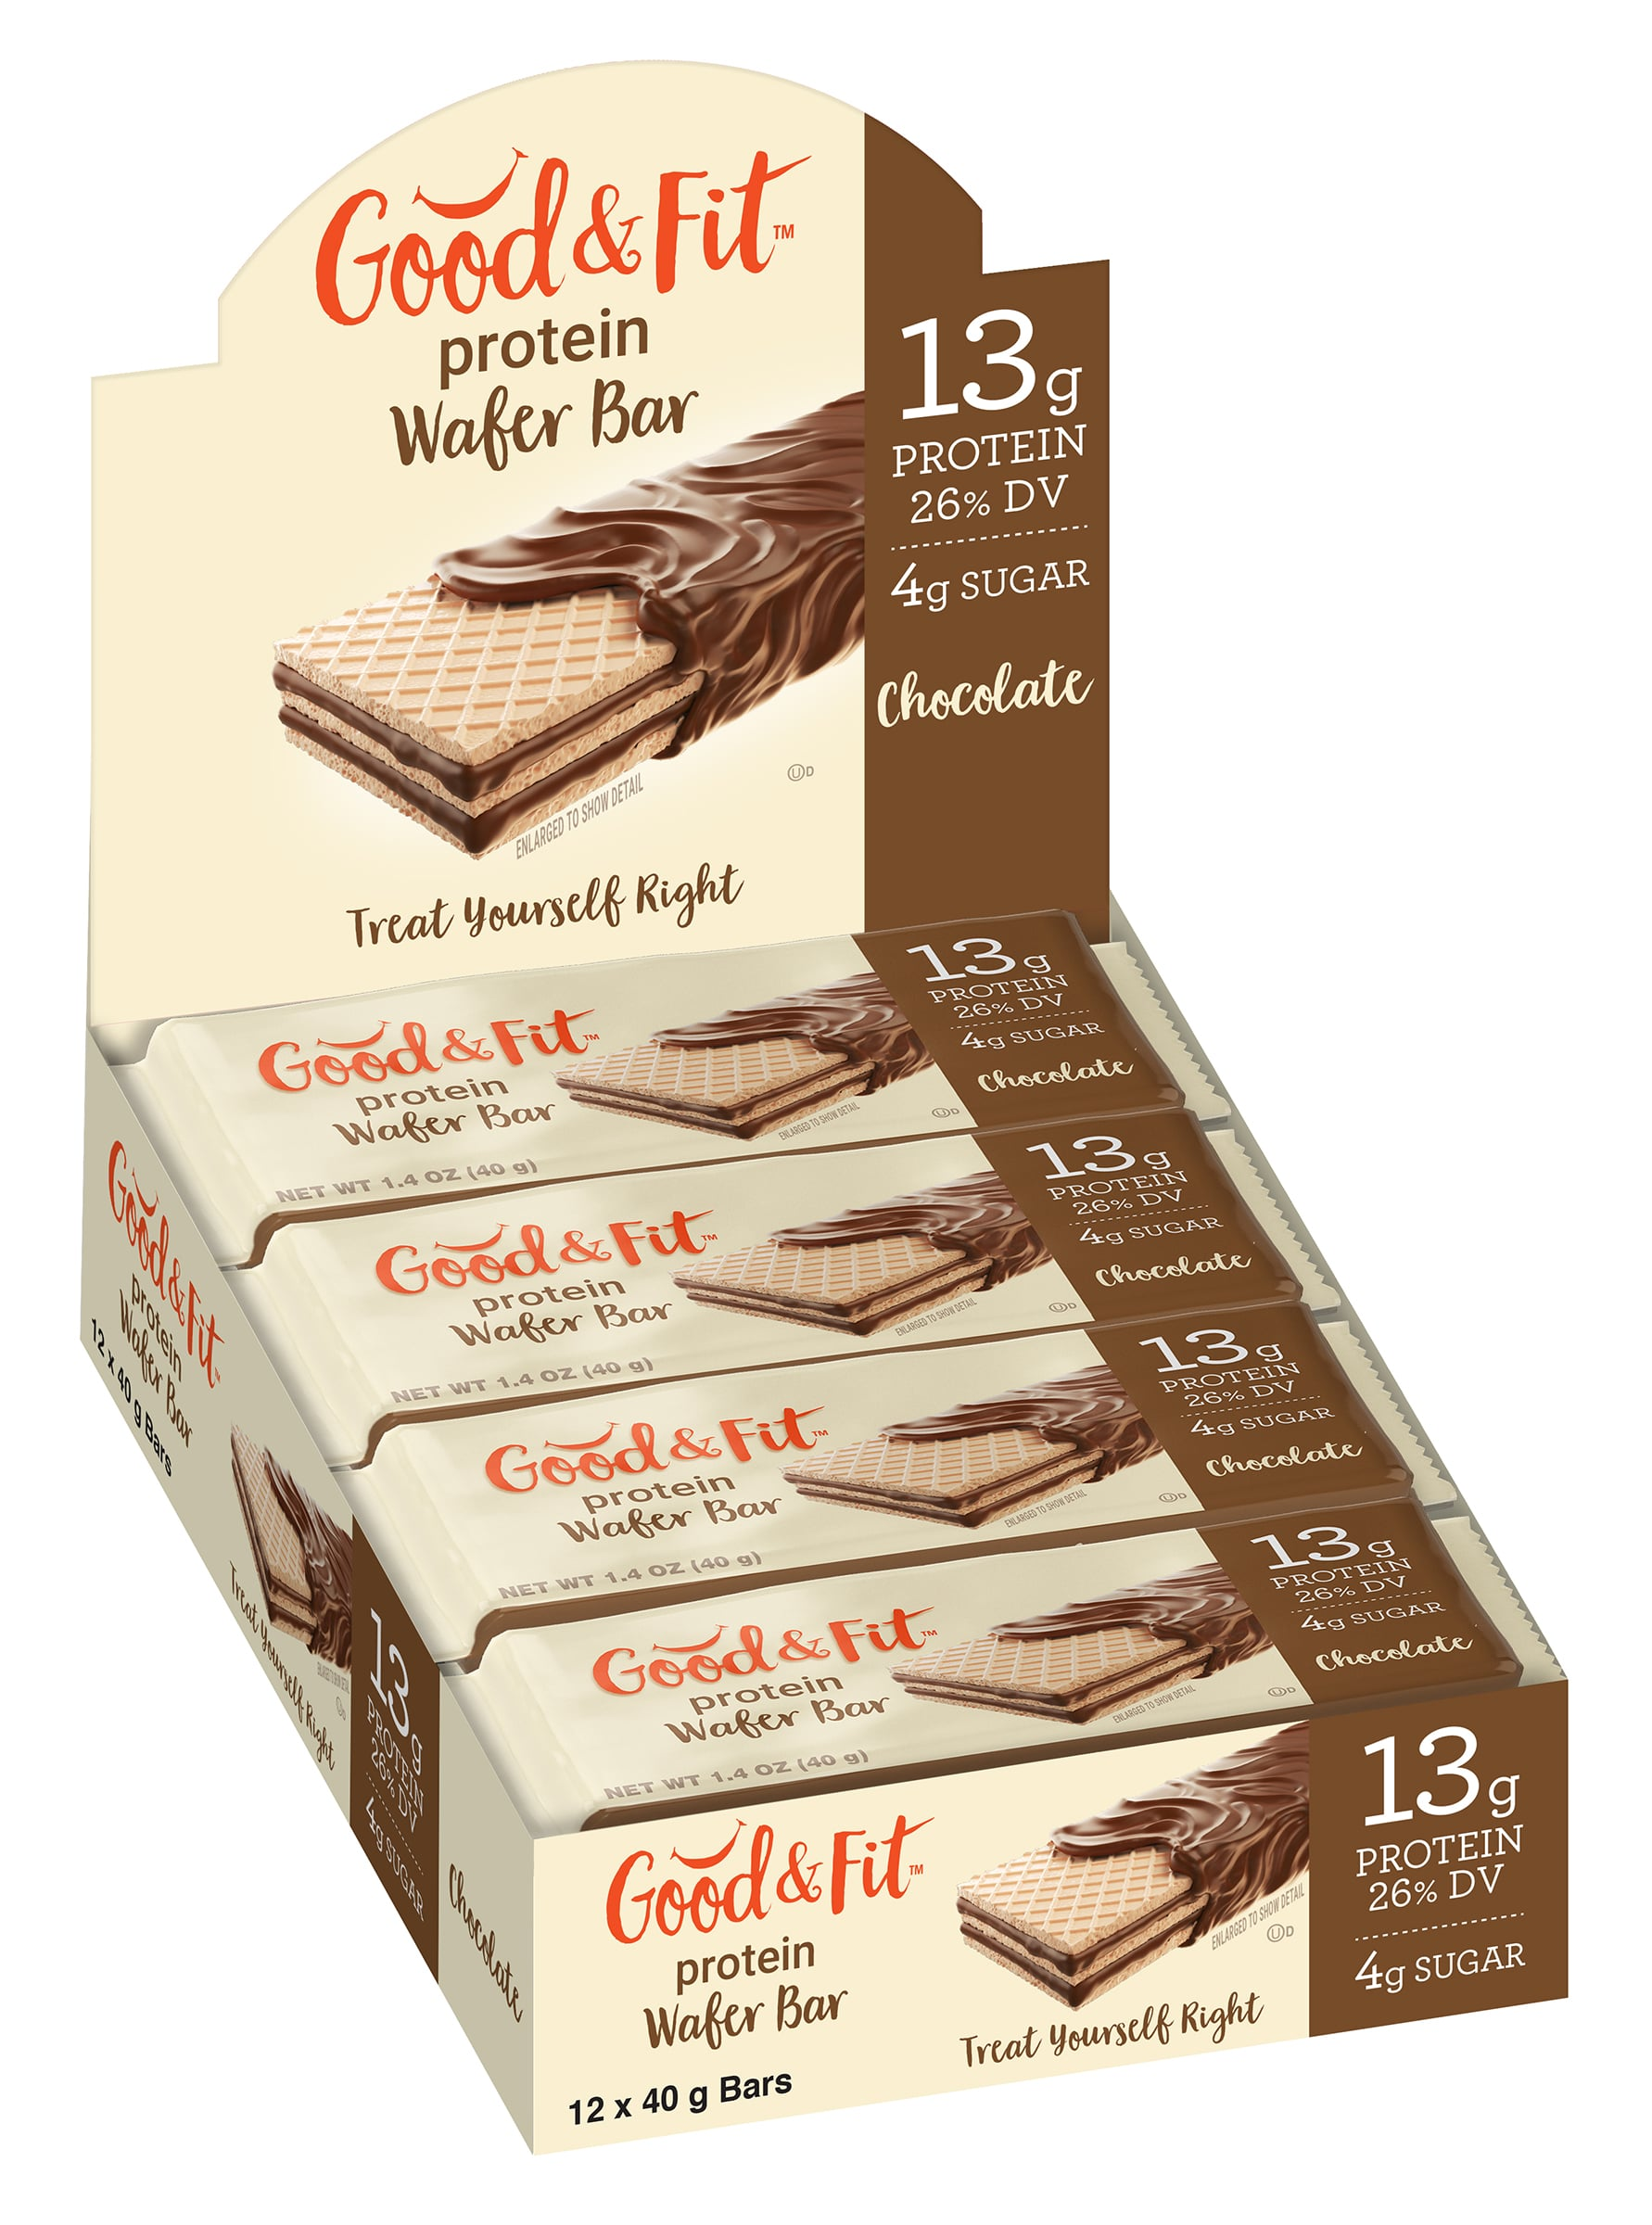 Healthy Food Brands to Launch 'Good & Fit' Protein Wafer Bar